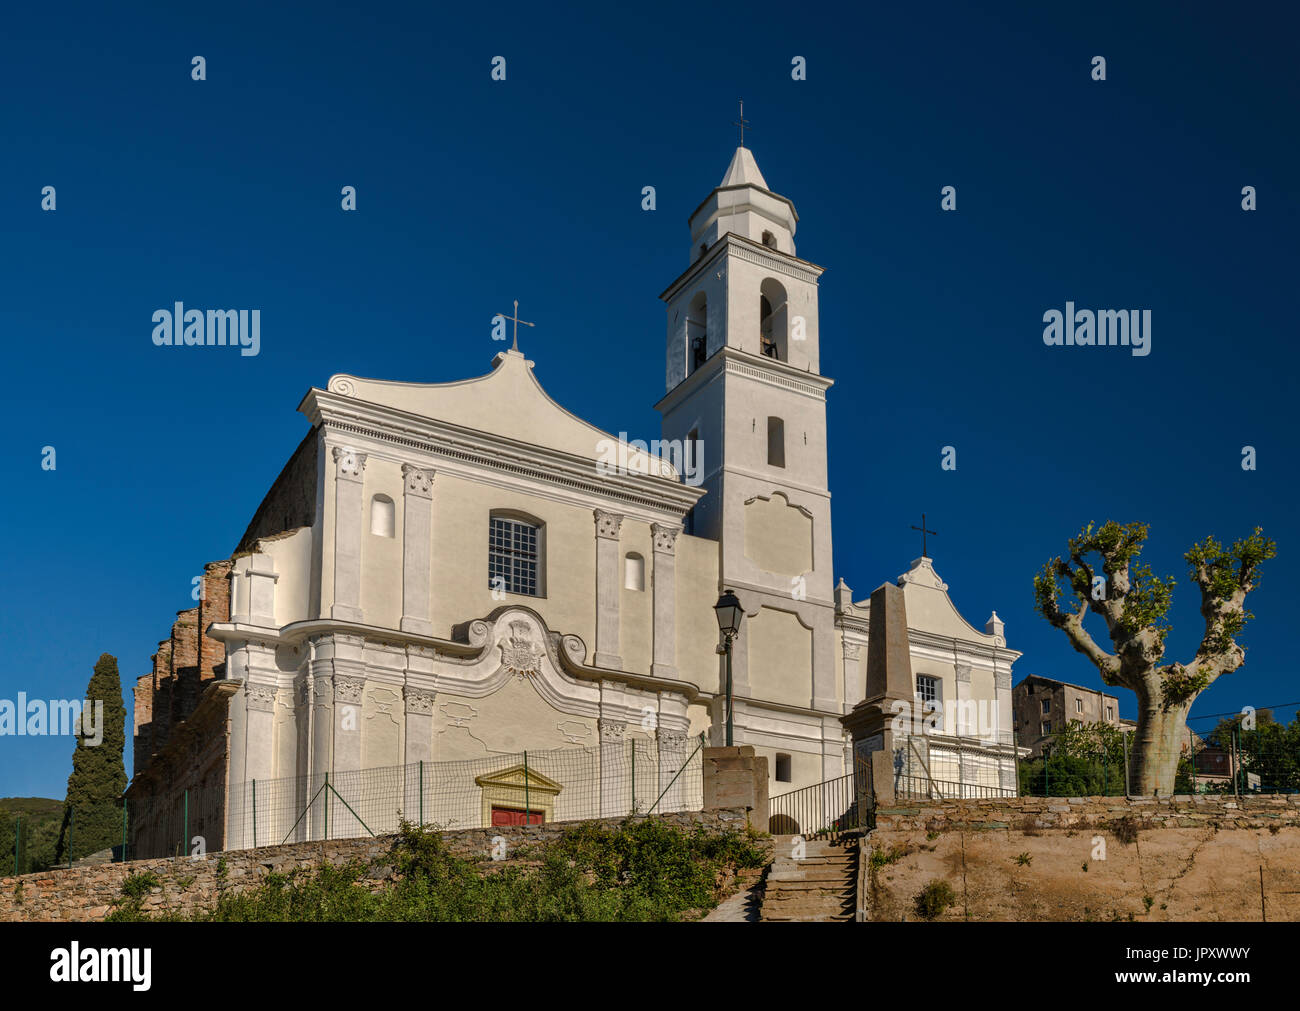 San Giovanni Evangelista Church, 16th century, in hillside village of Santo-Pietro-di-Tenda, Nebbio region, Haute-Corse, Corsica, France - Stock Image